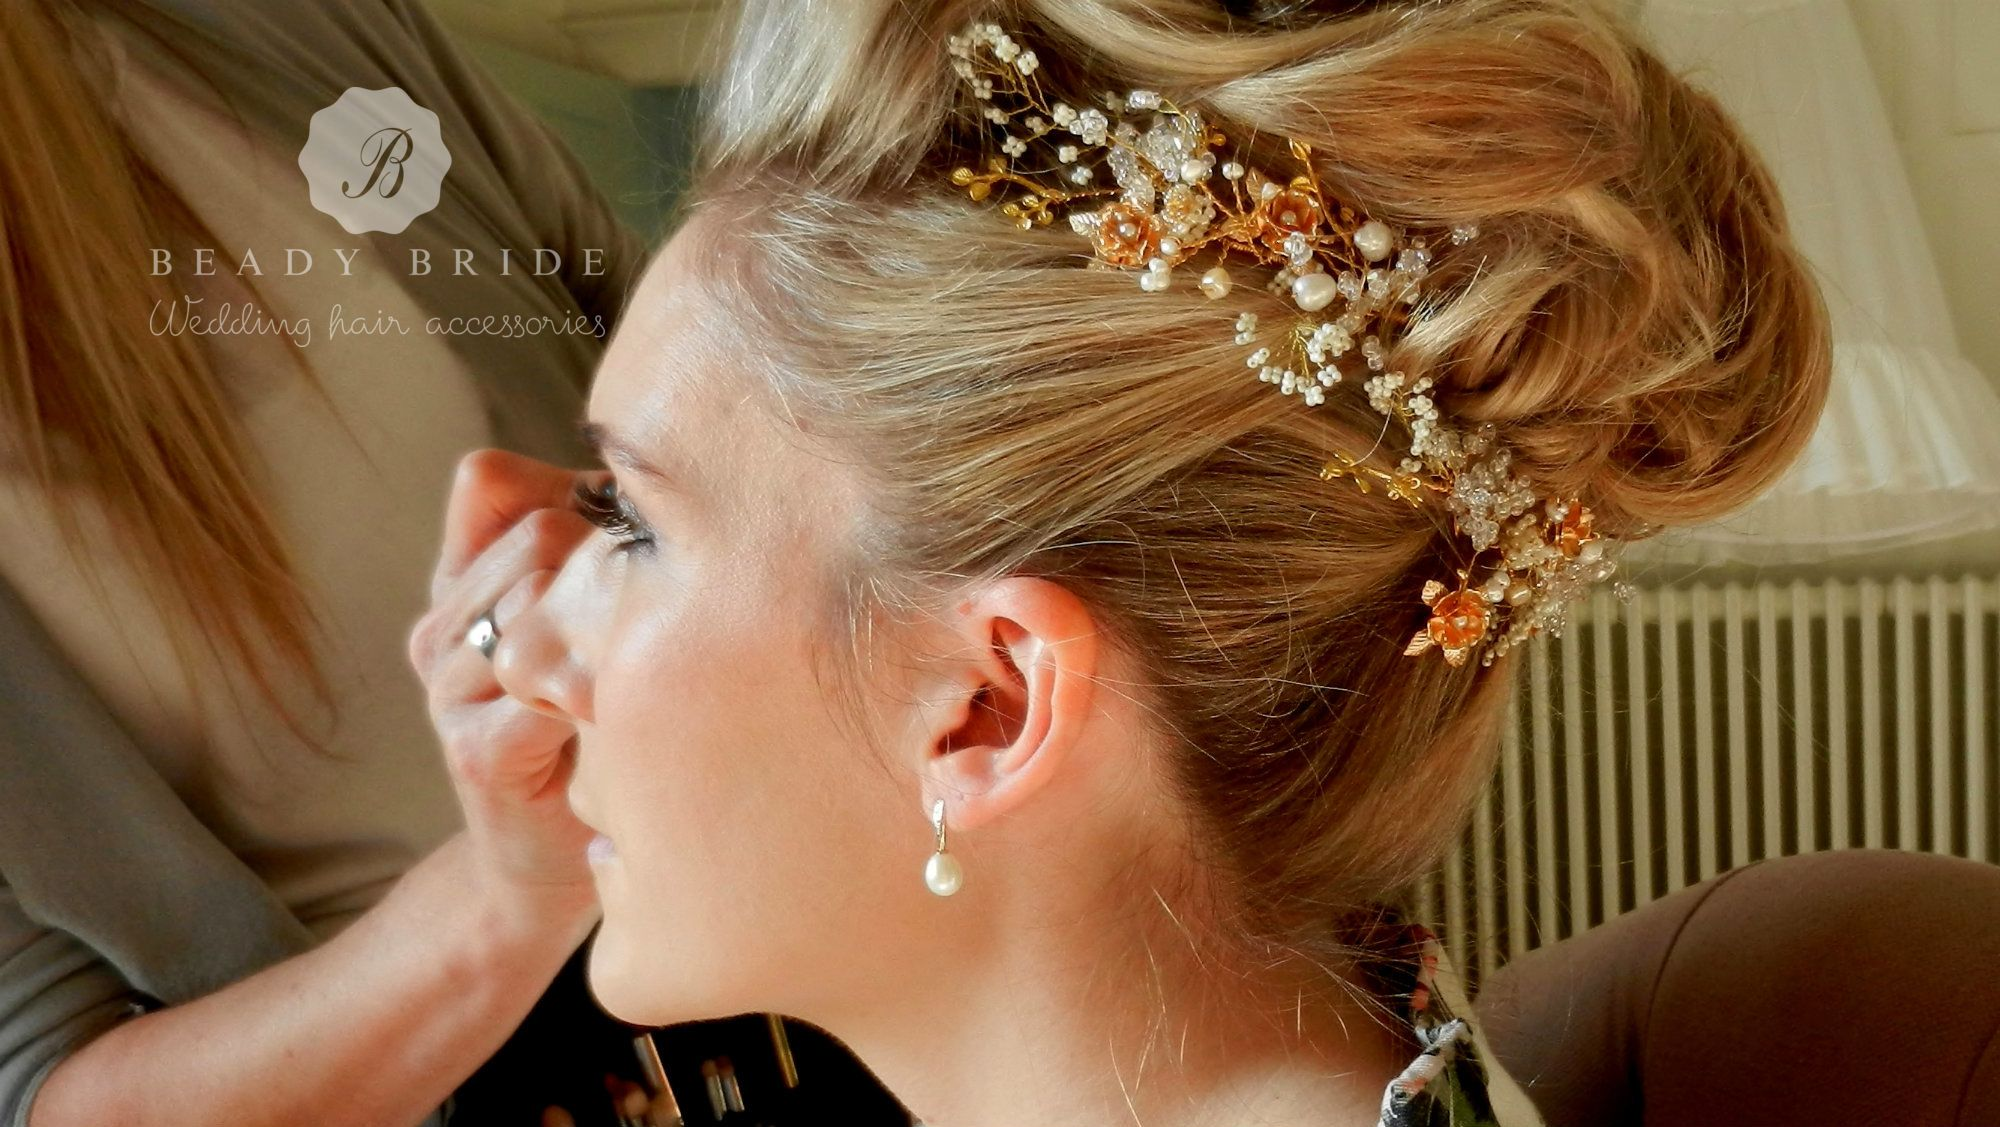 Colourful Bridal Hair Accessories Beautifully Hand Crafted By Beady